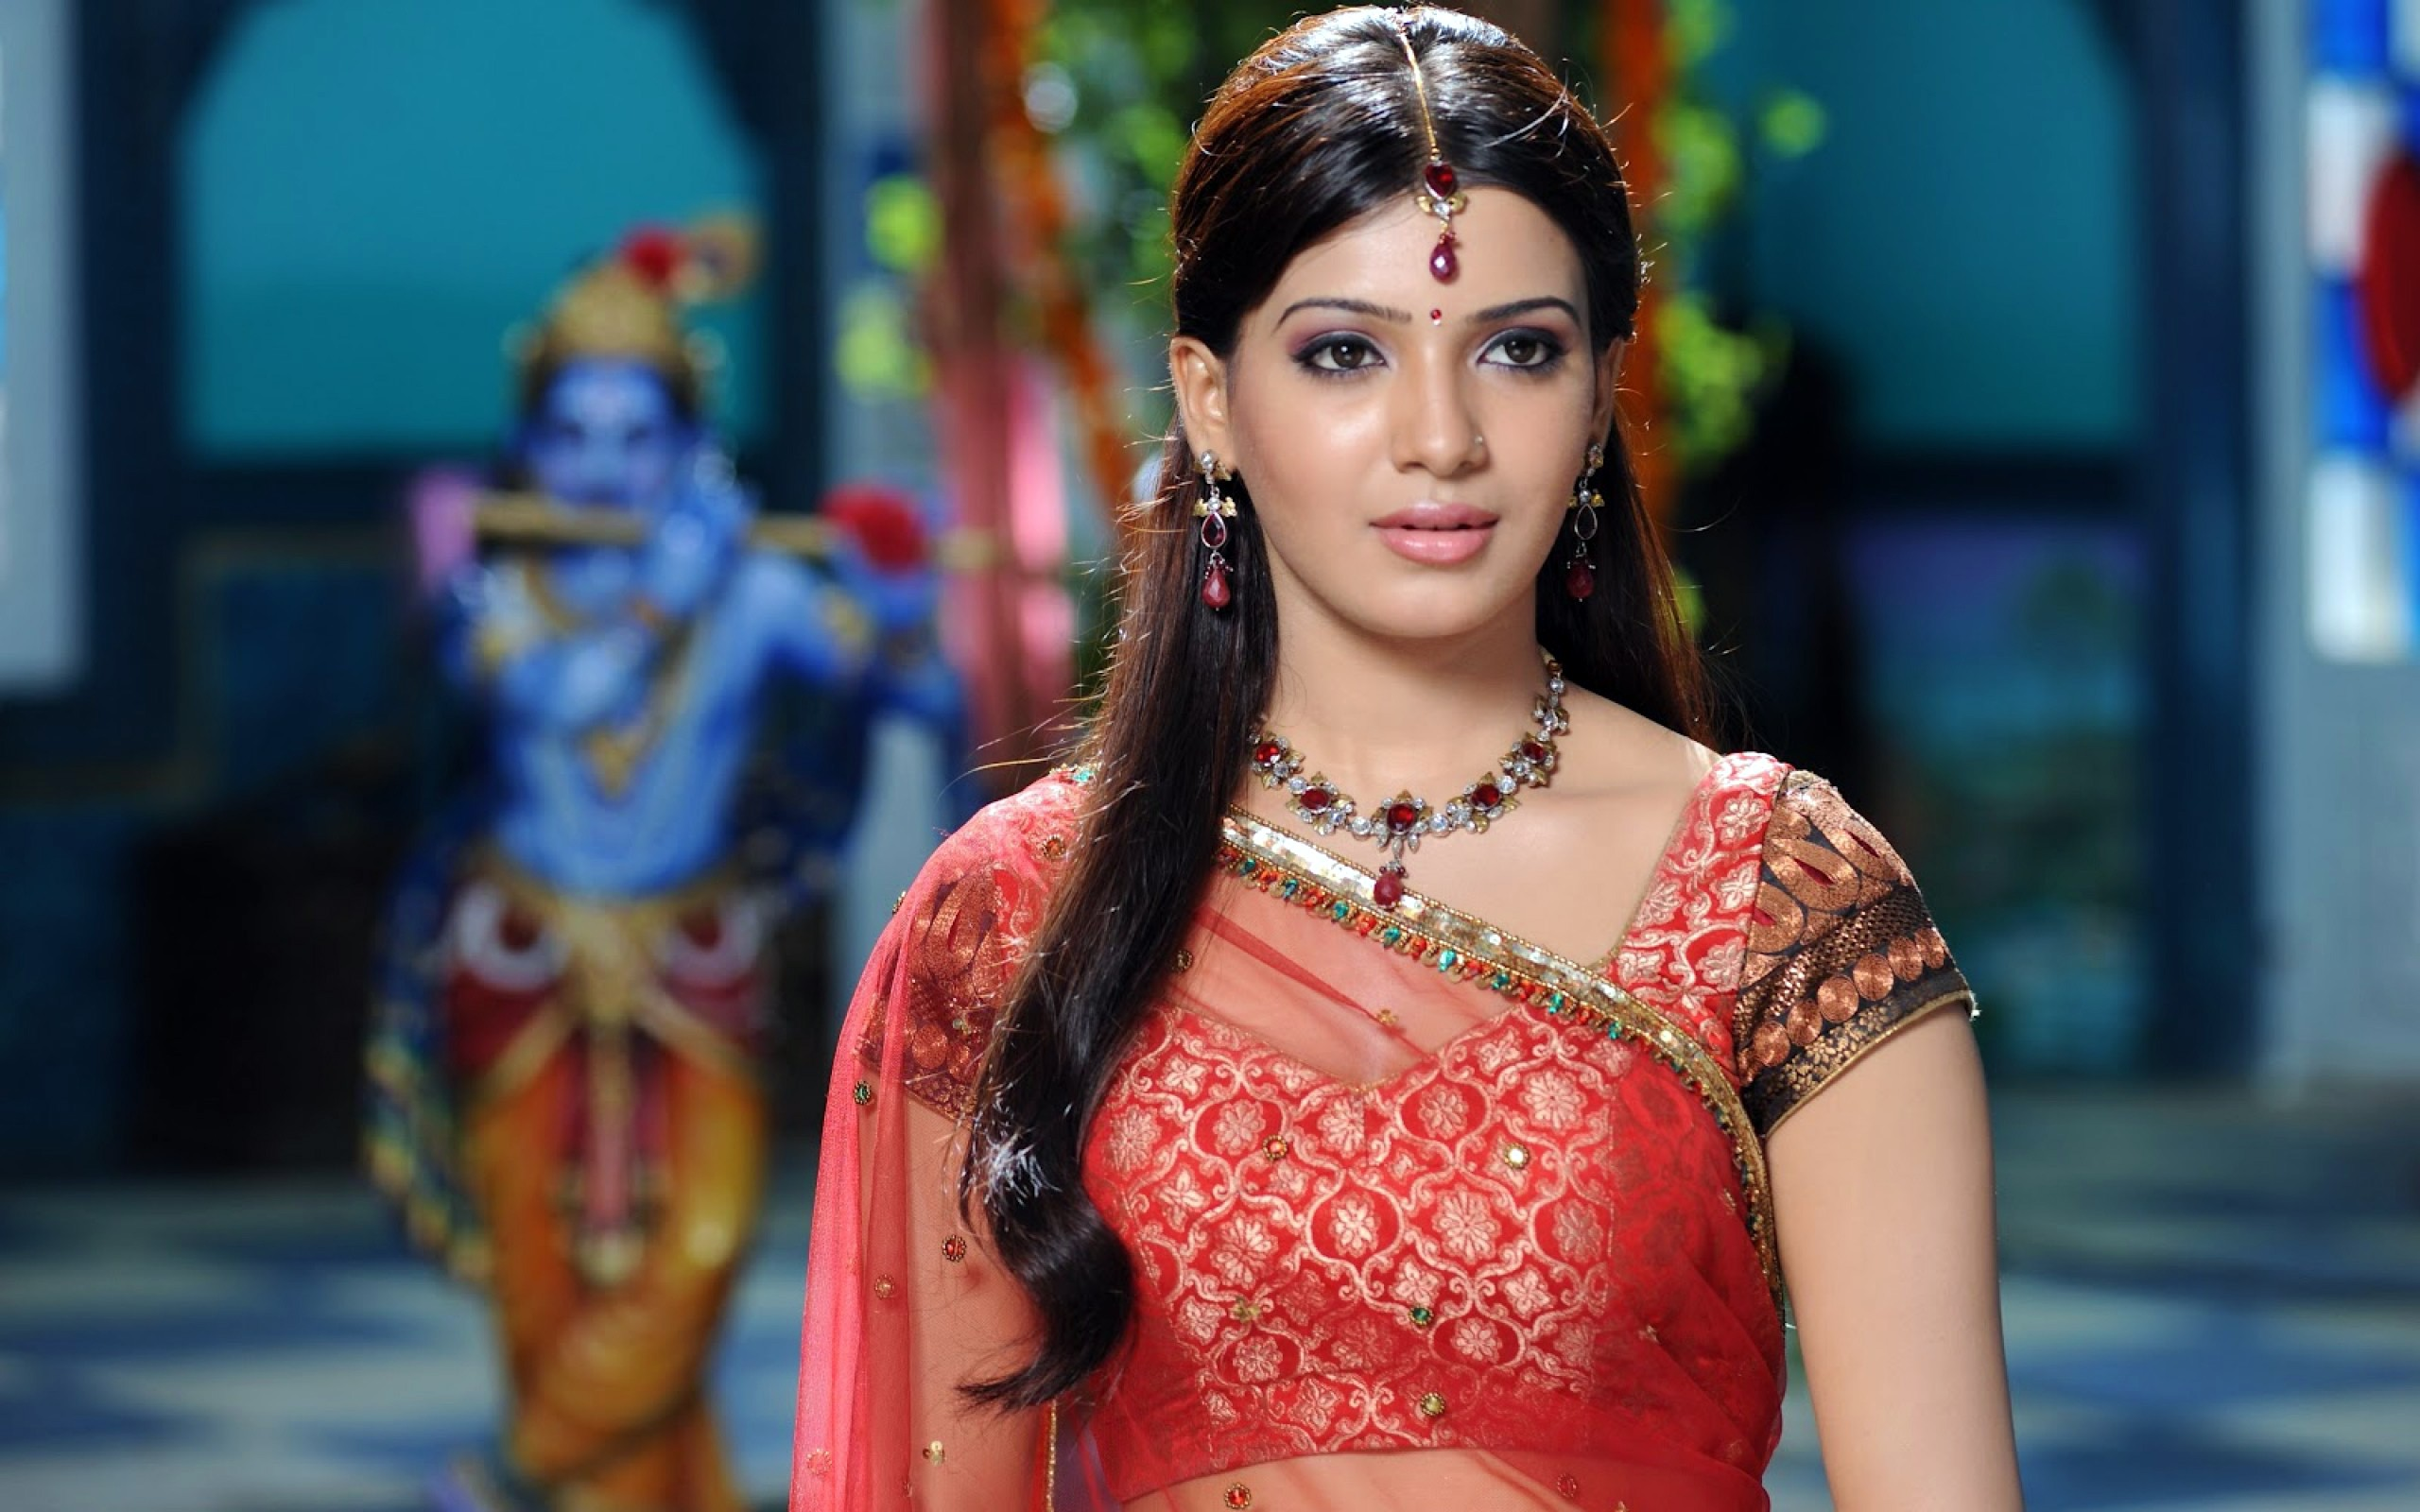 Samantha Ruth Prabhu 3d Wallpaper Samantha 9 Hd Indian Celebrities 4k Wallpapers Images